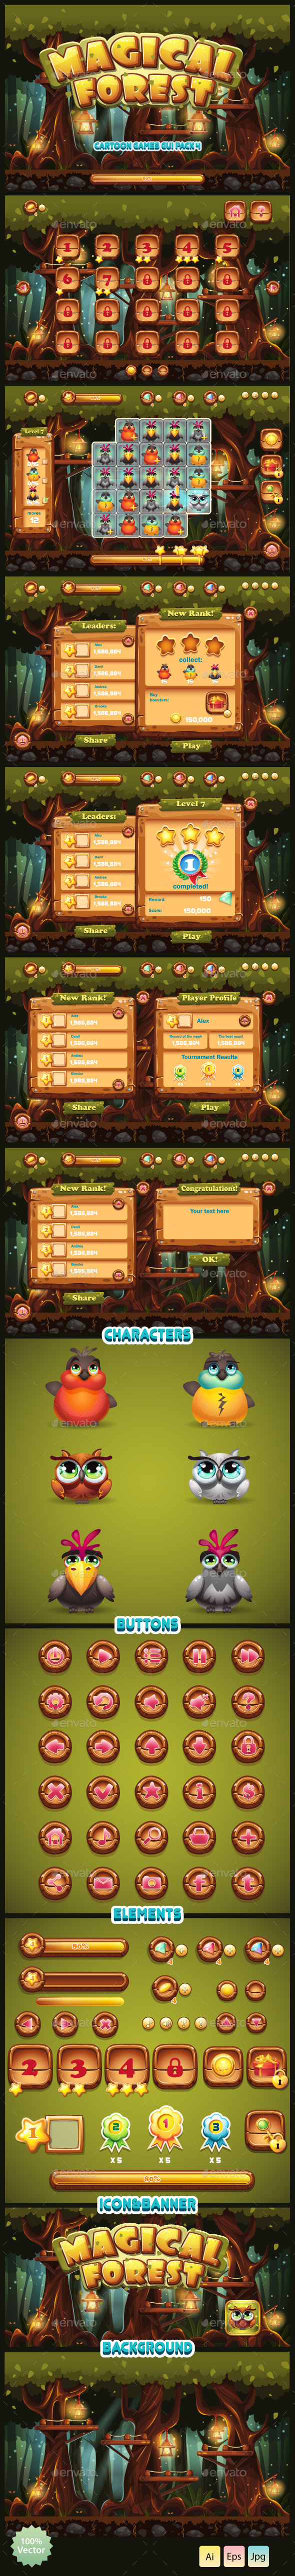 GUI Magical Forest - Game Kits Game Assets